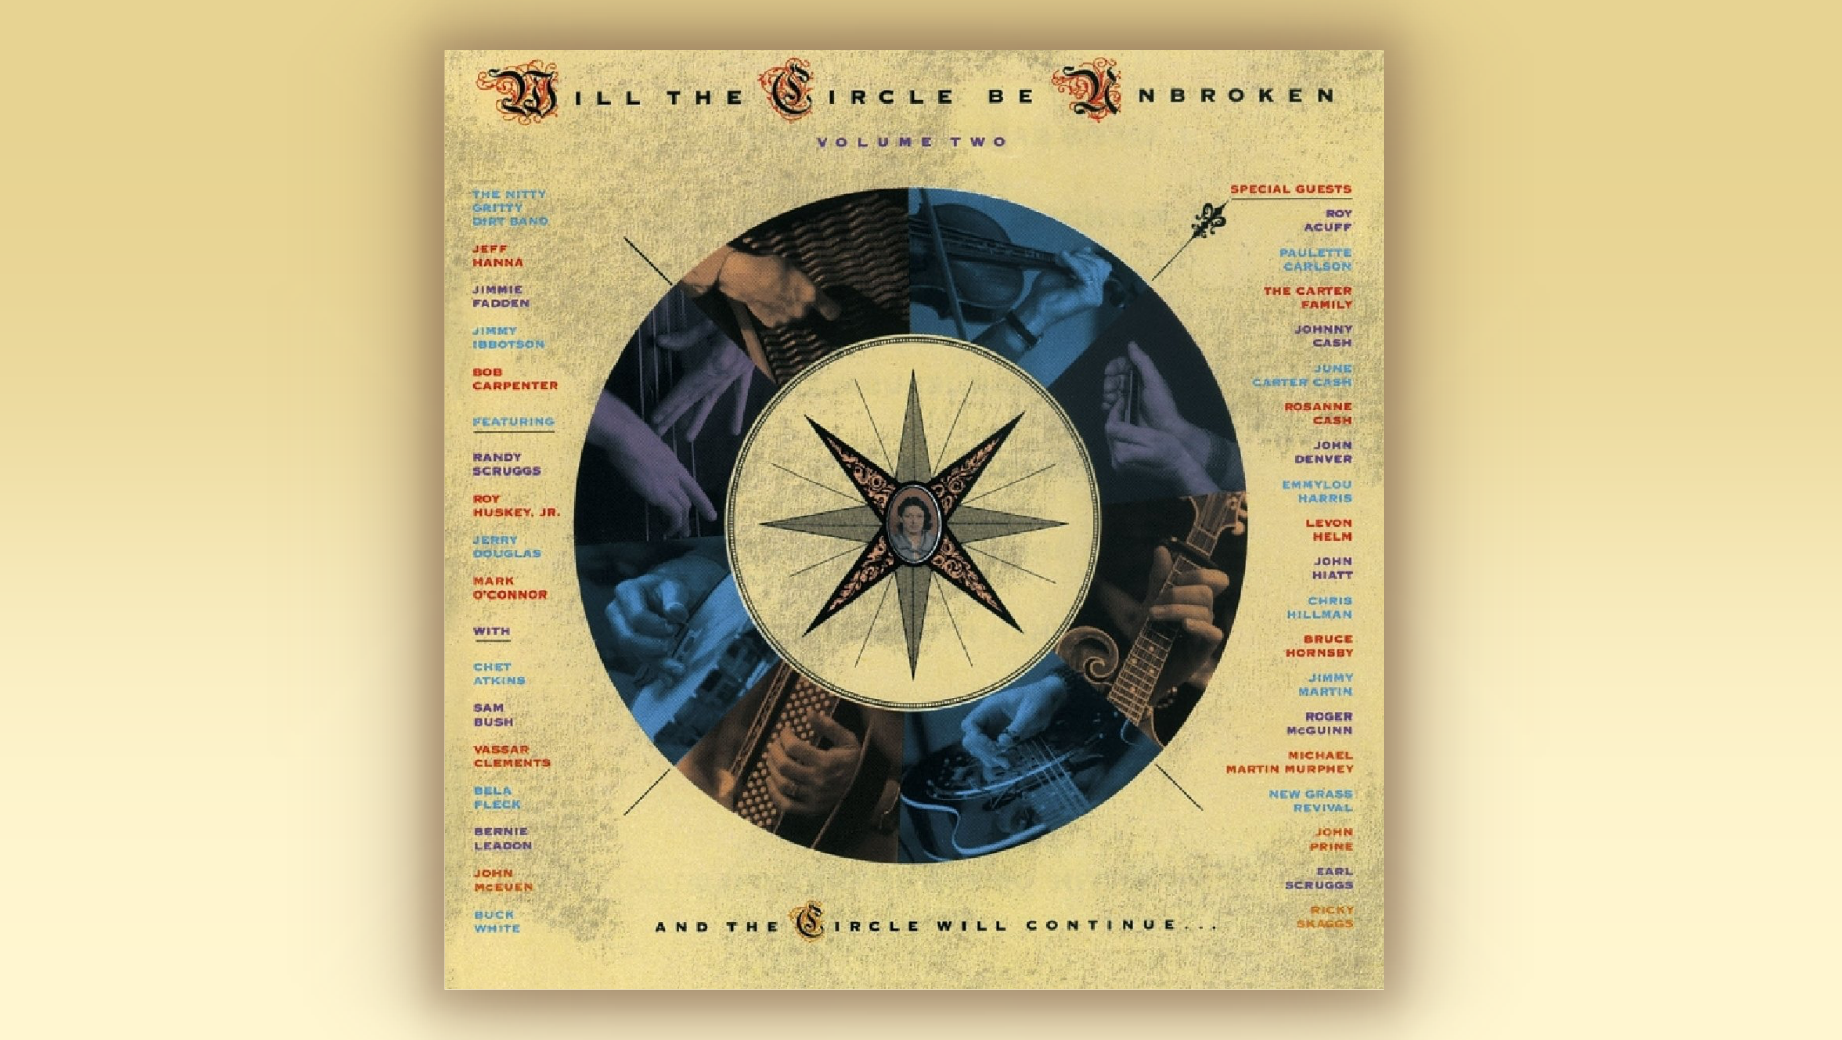 BGS Presents 30 Years of 'Will the Circle Be Unbroken, Volume Two' at Americanafest